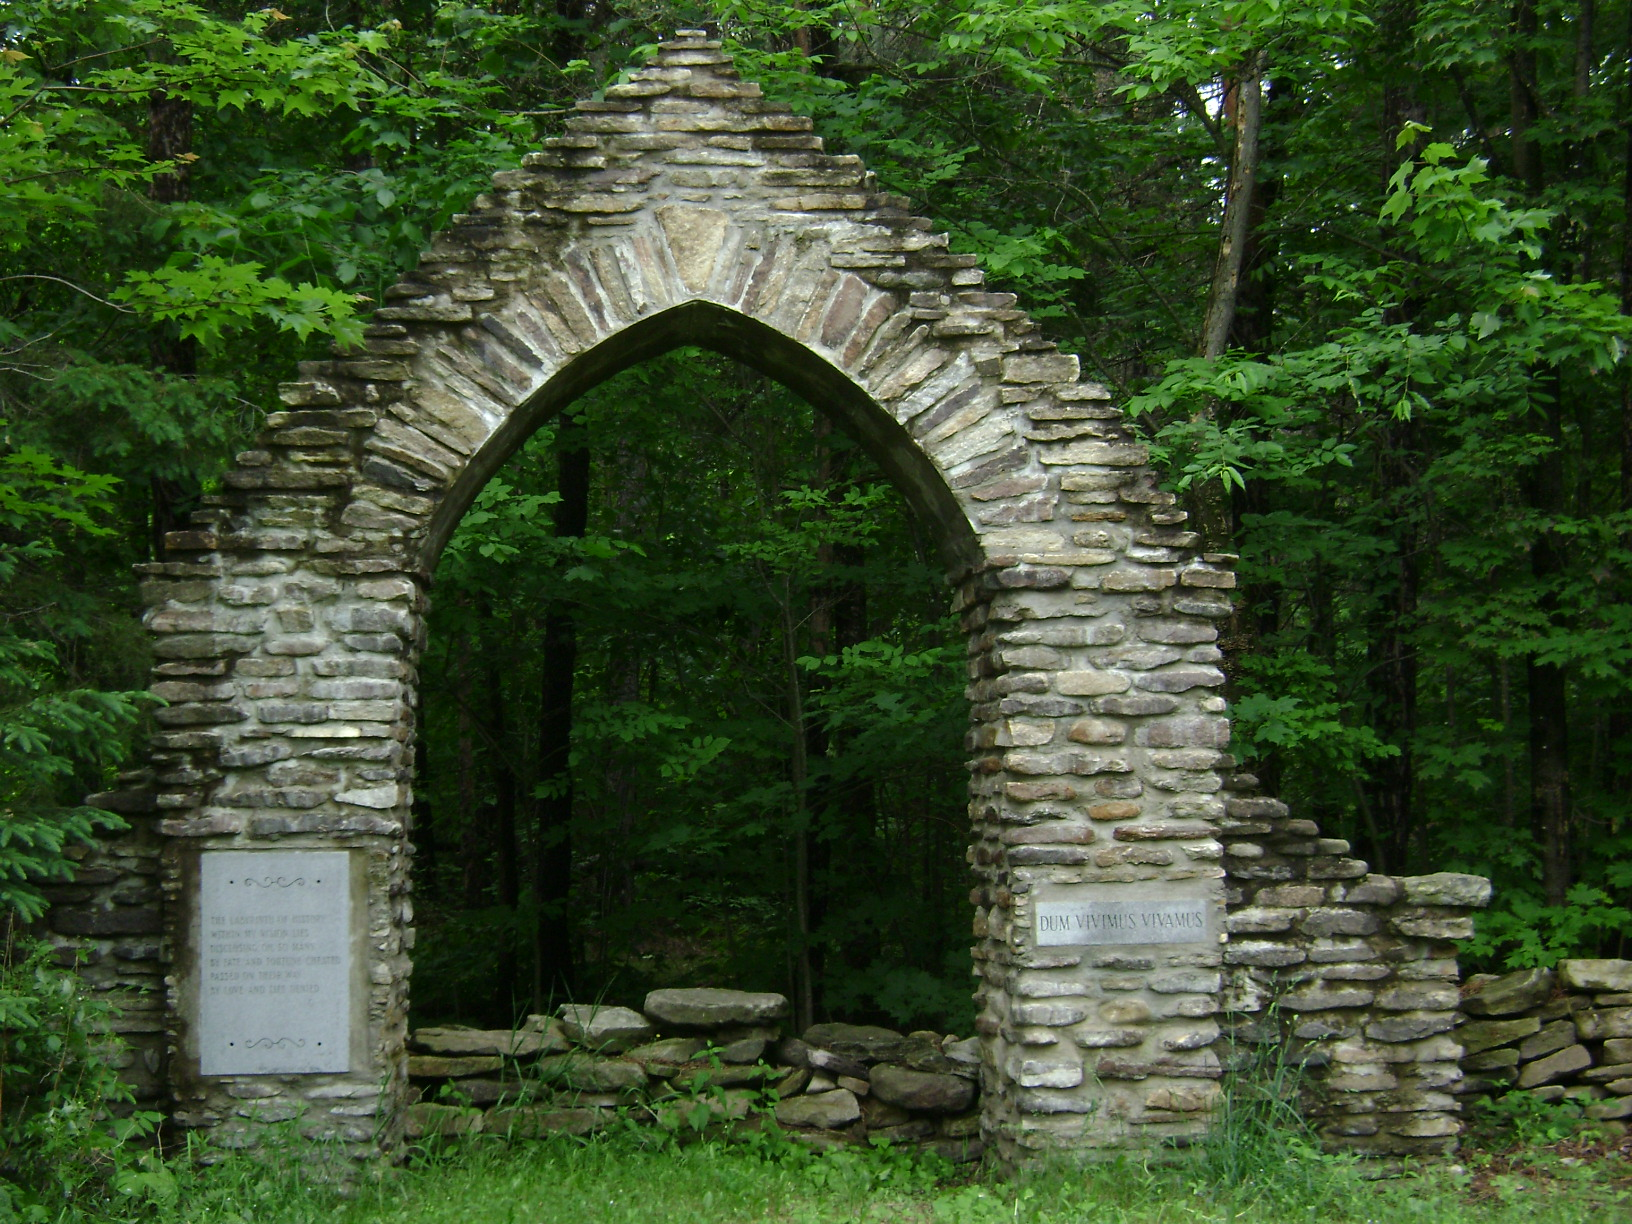 A Stone Arch Monument